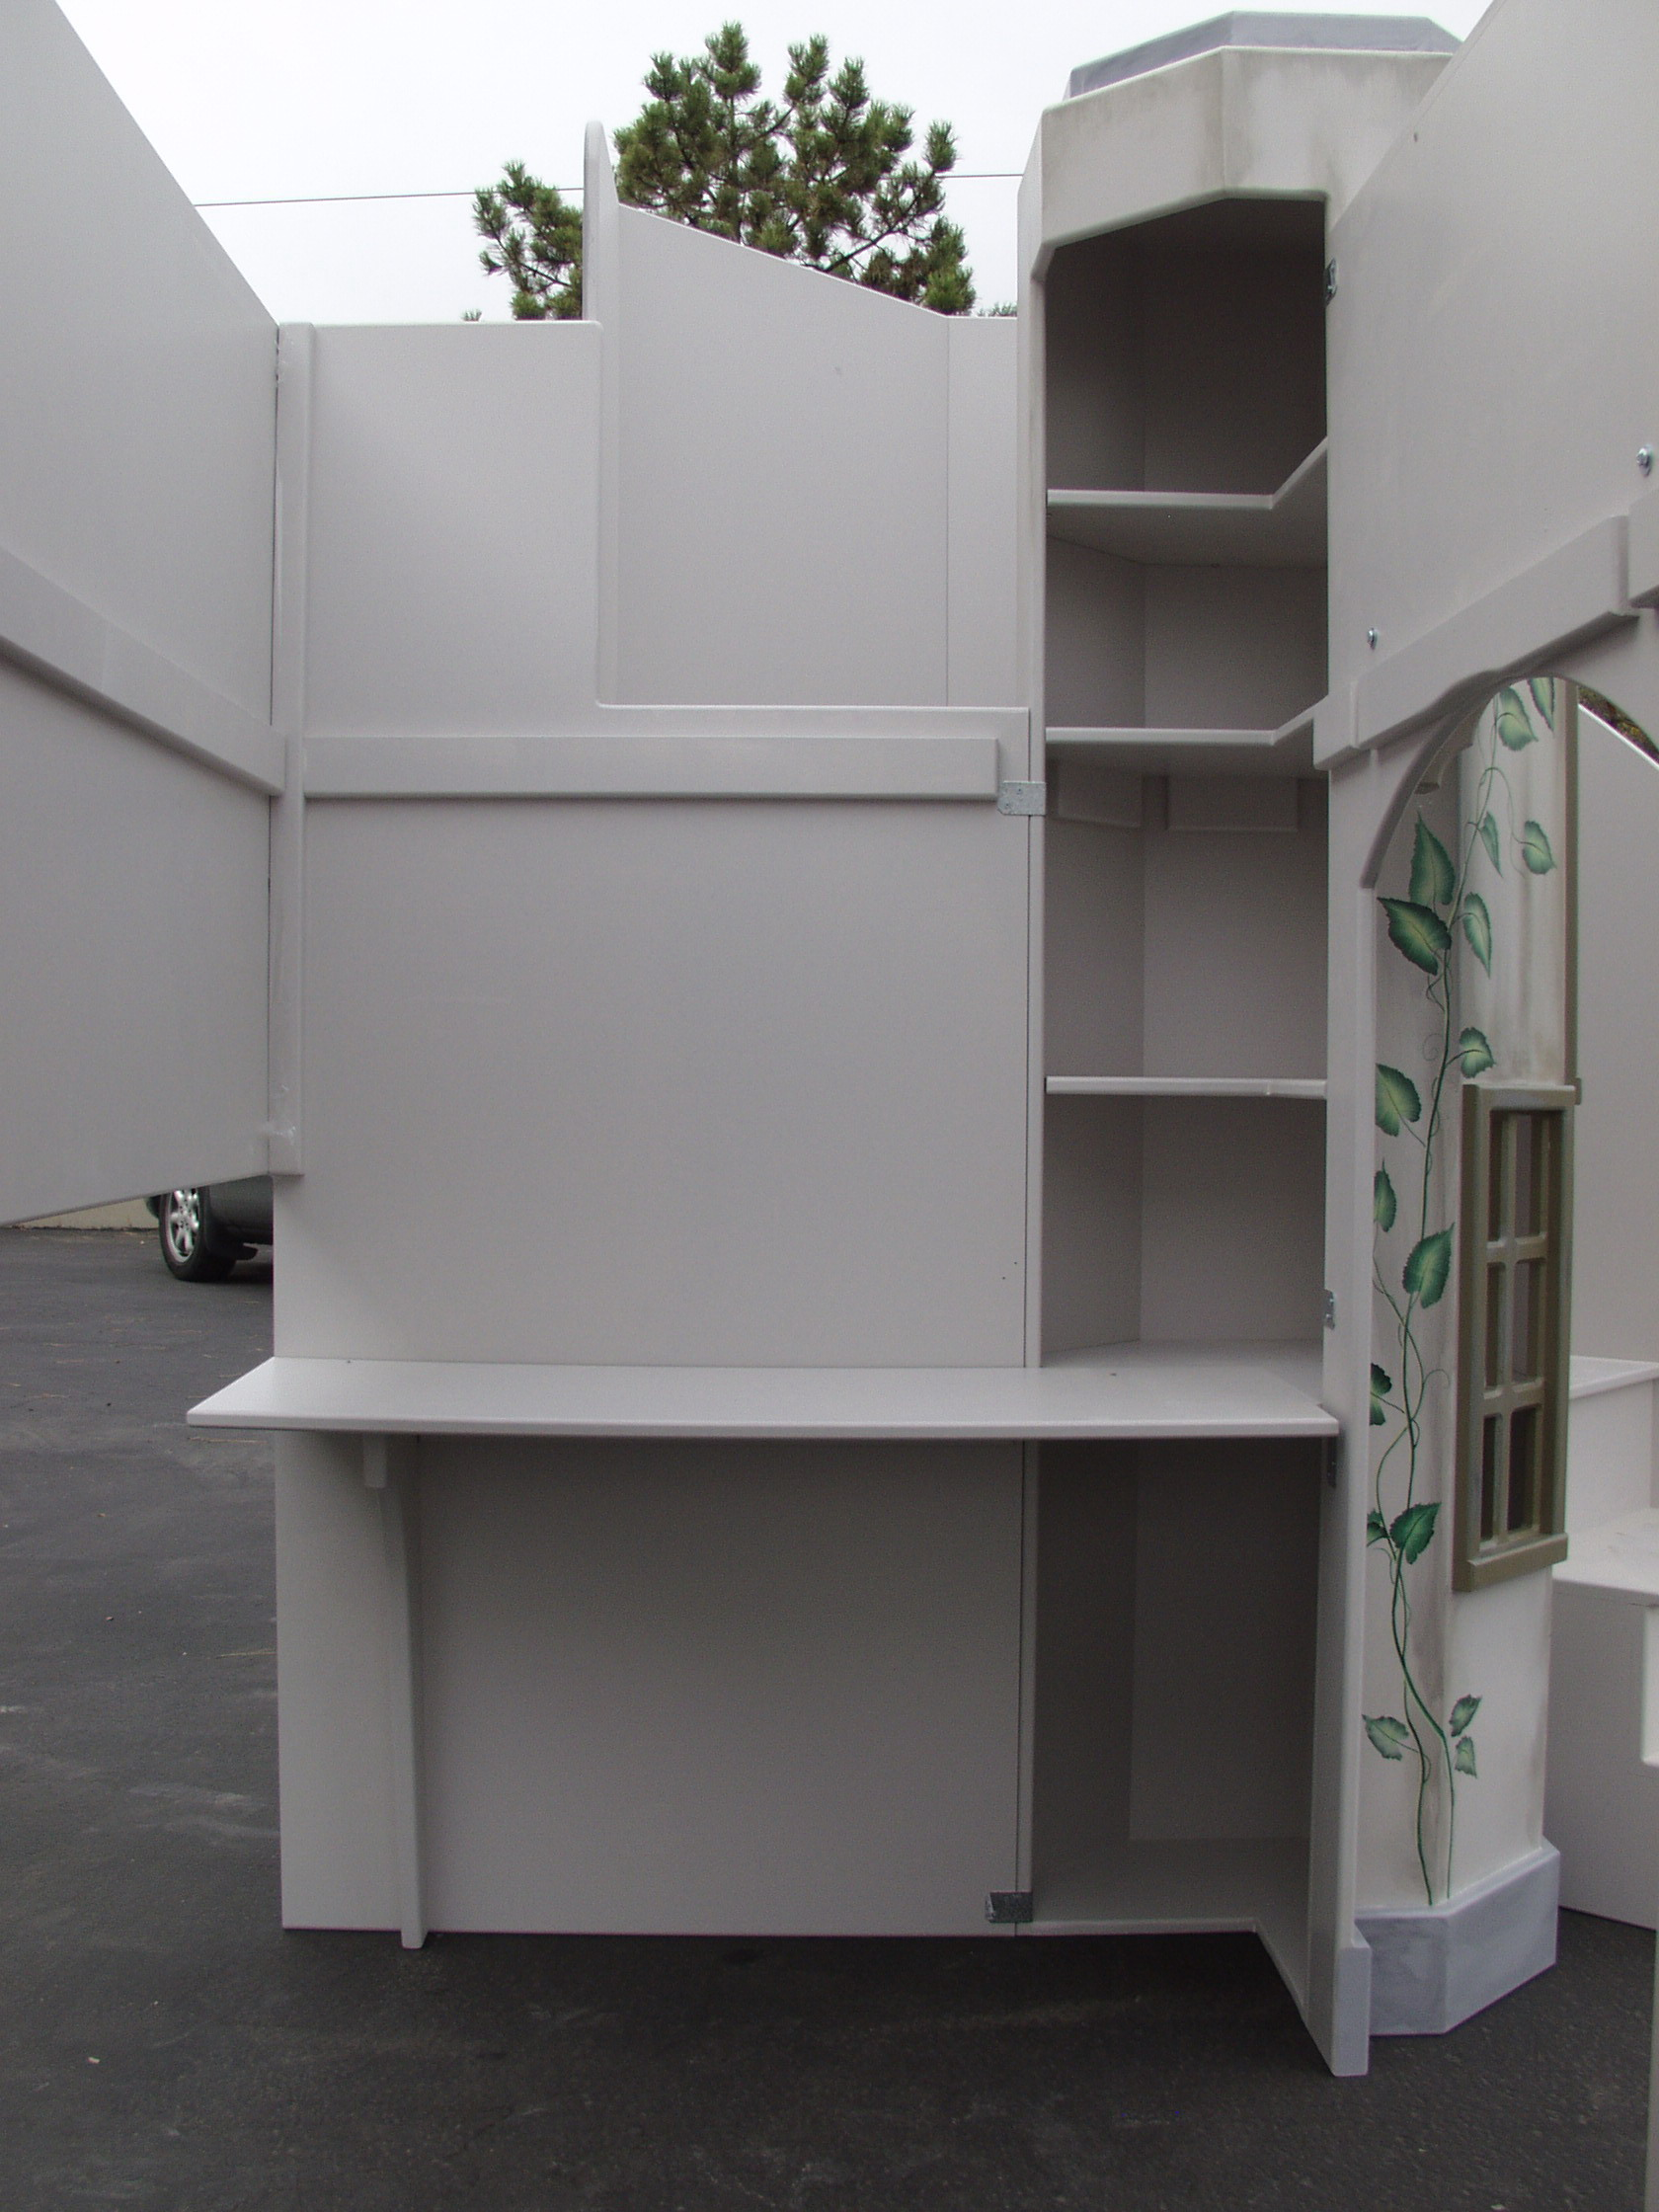 Sports Arena Bed/Playhouse w/Desk and Shelves on the Inside